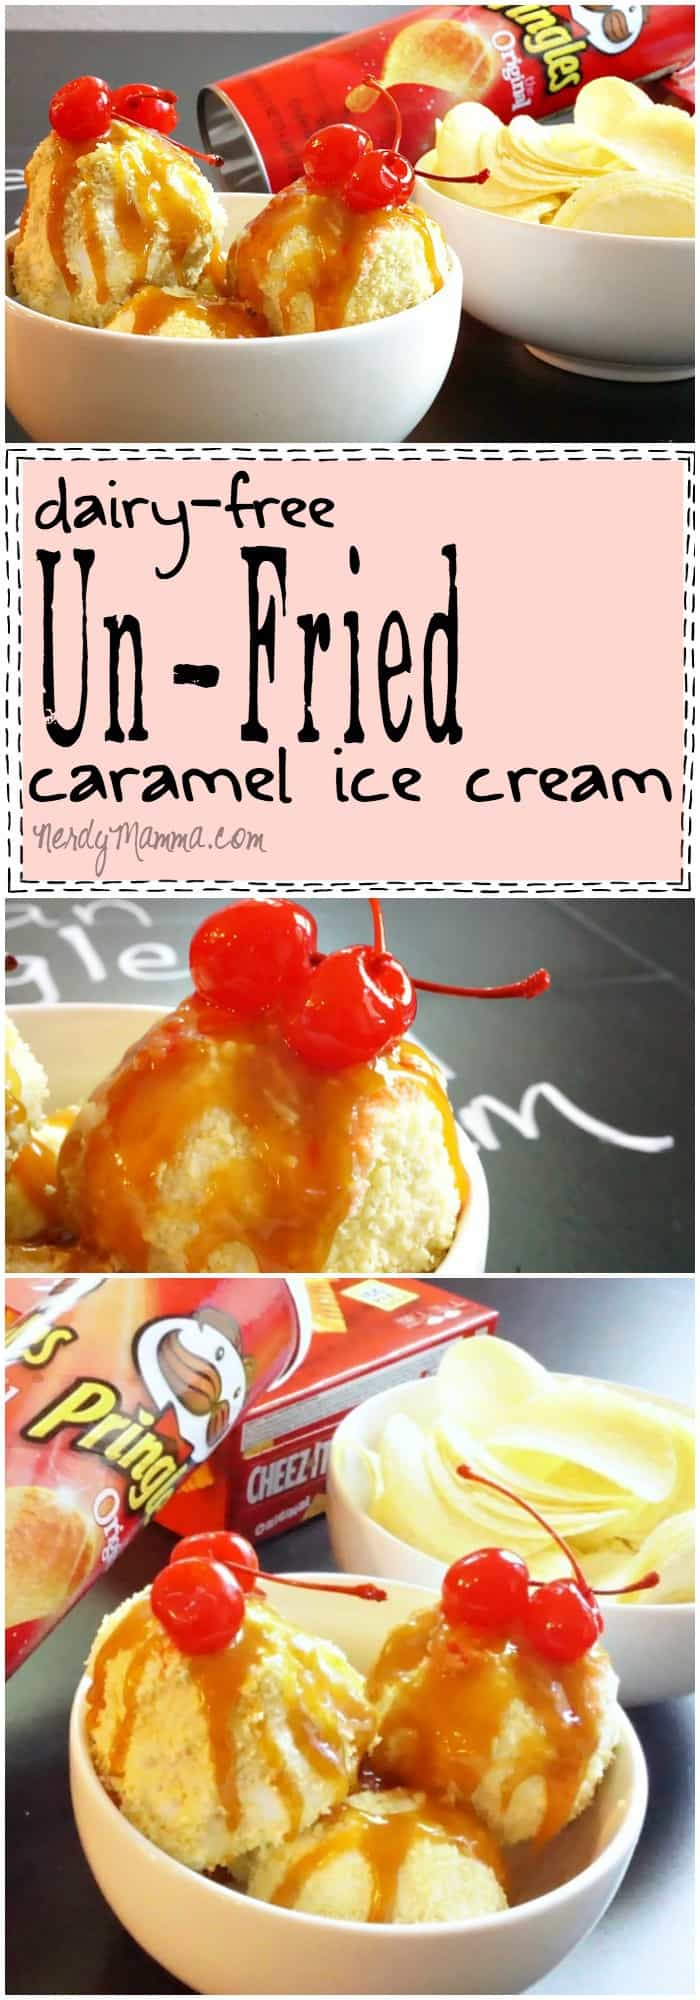 I love this recipe for dairy-free Un-Fried caramel ice cream. I mean, I didn't know you could make fried ice cream so easily! And it's vegan. I just love it!